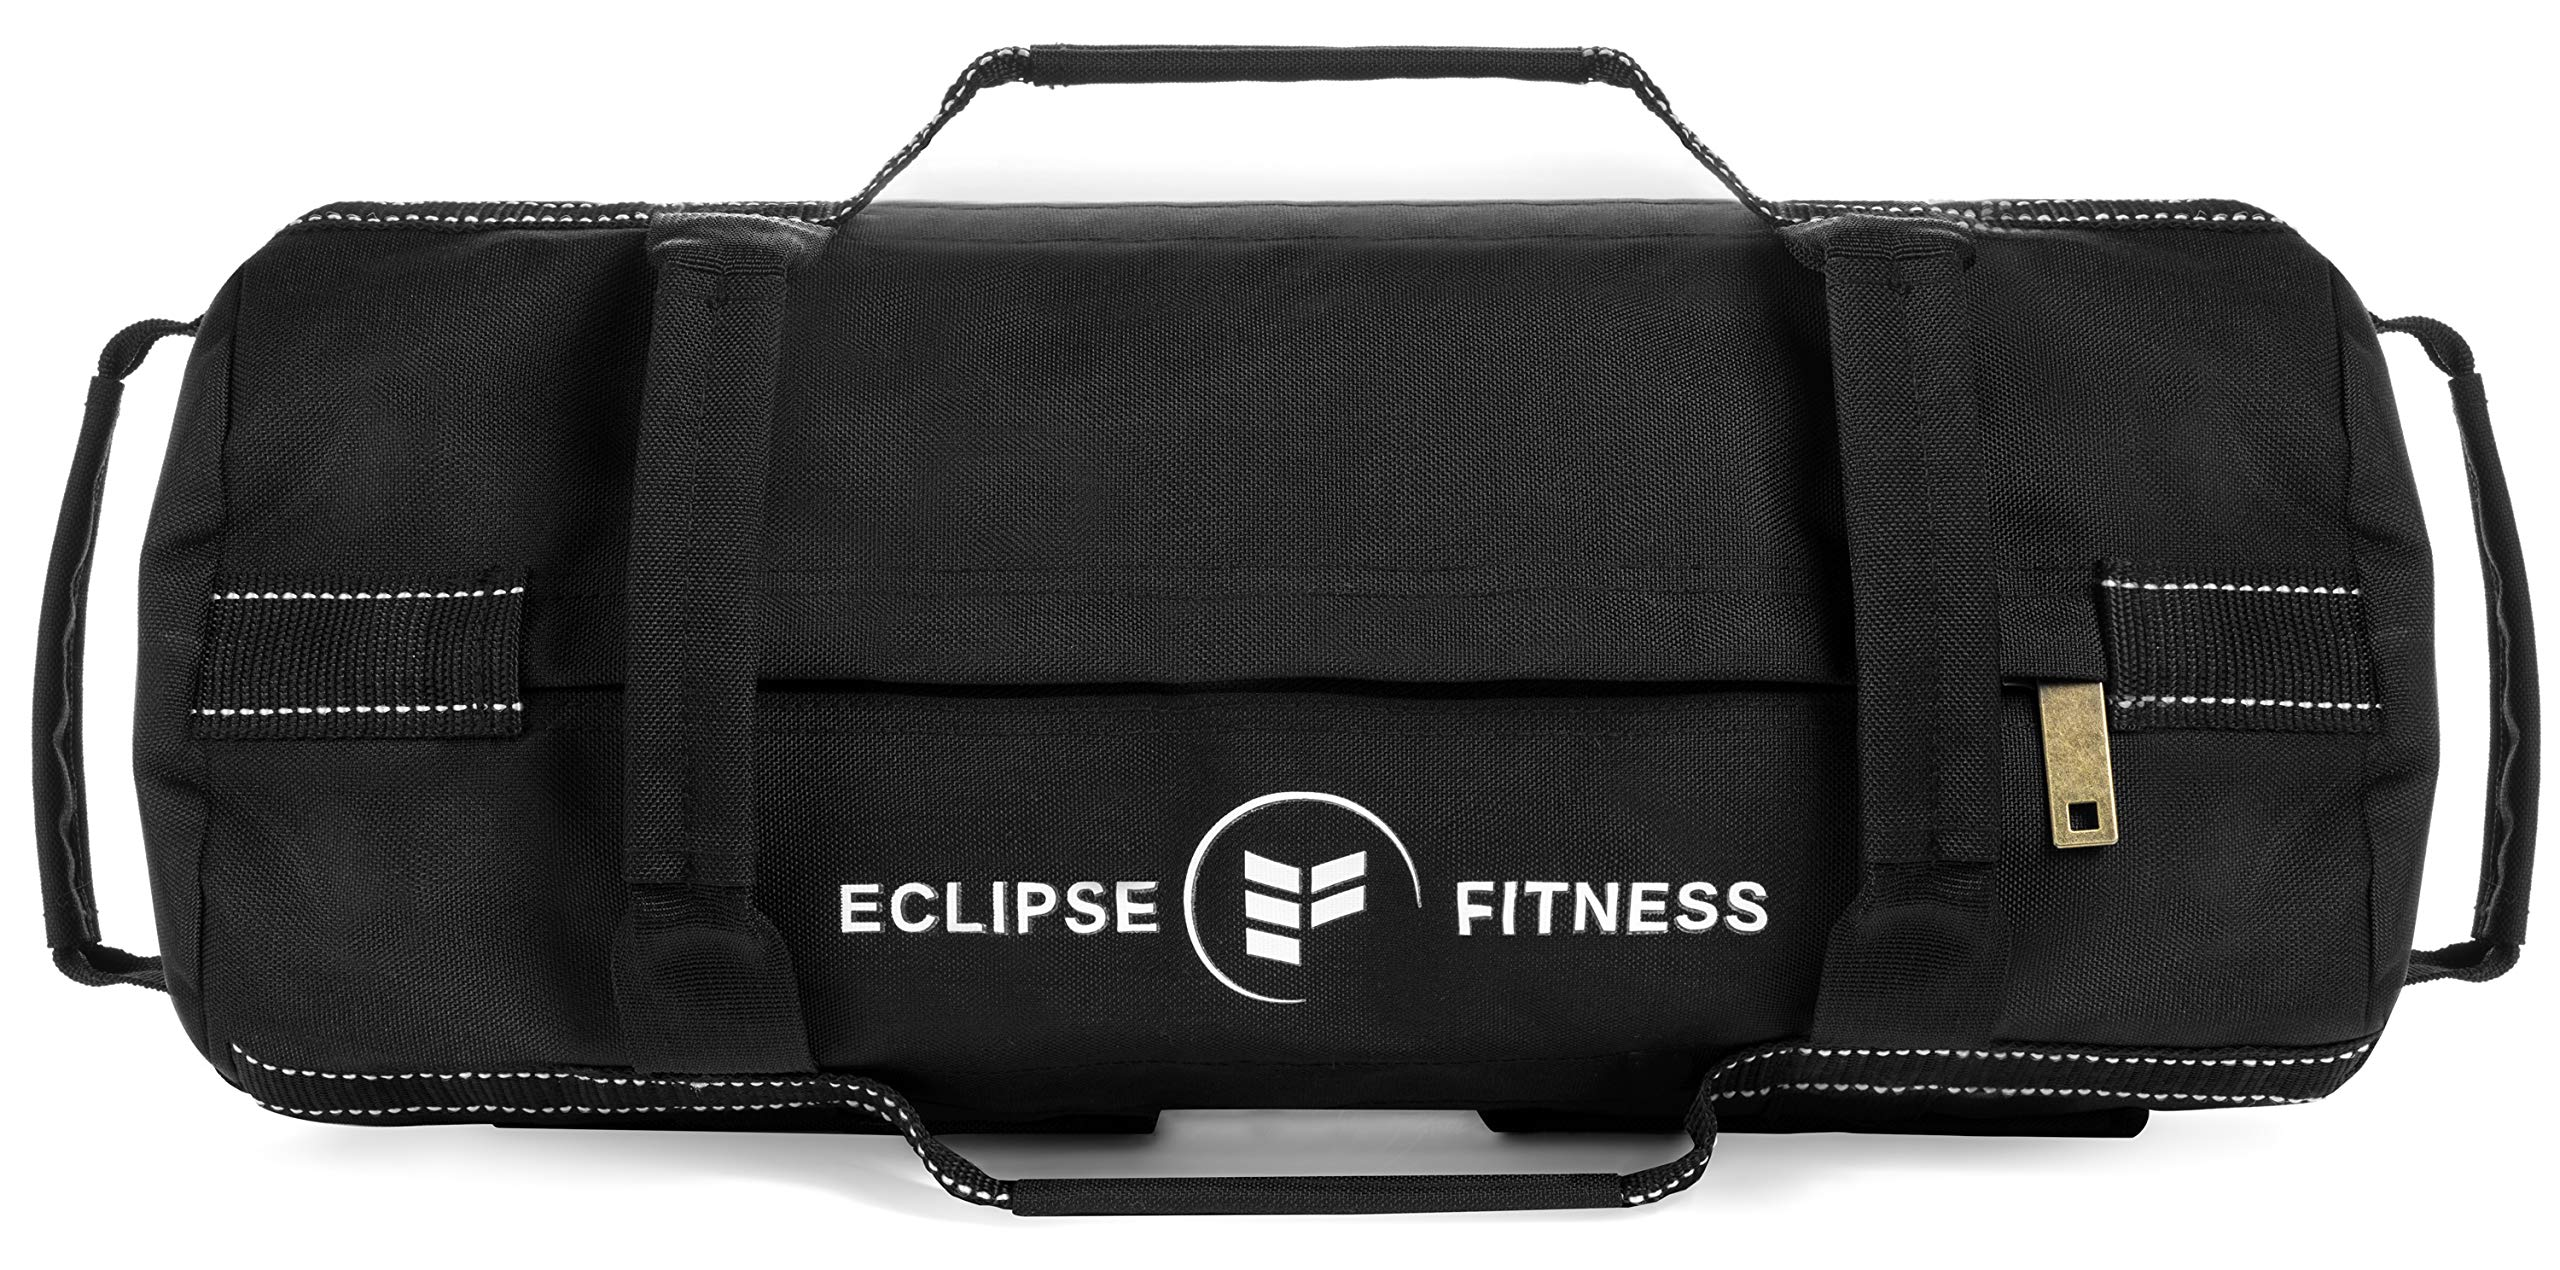 Sandbag for Fitness | Adjustable Weights for Workout | Heavy Duty Reinforced Military Nylon | Includes Exercise Guide | for Training, Crossfit, WOD | (Black, 0-25 LBS)